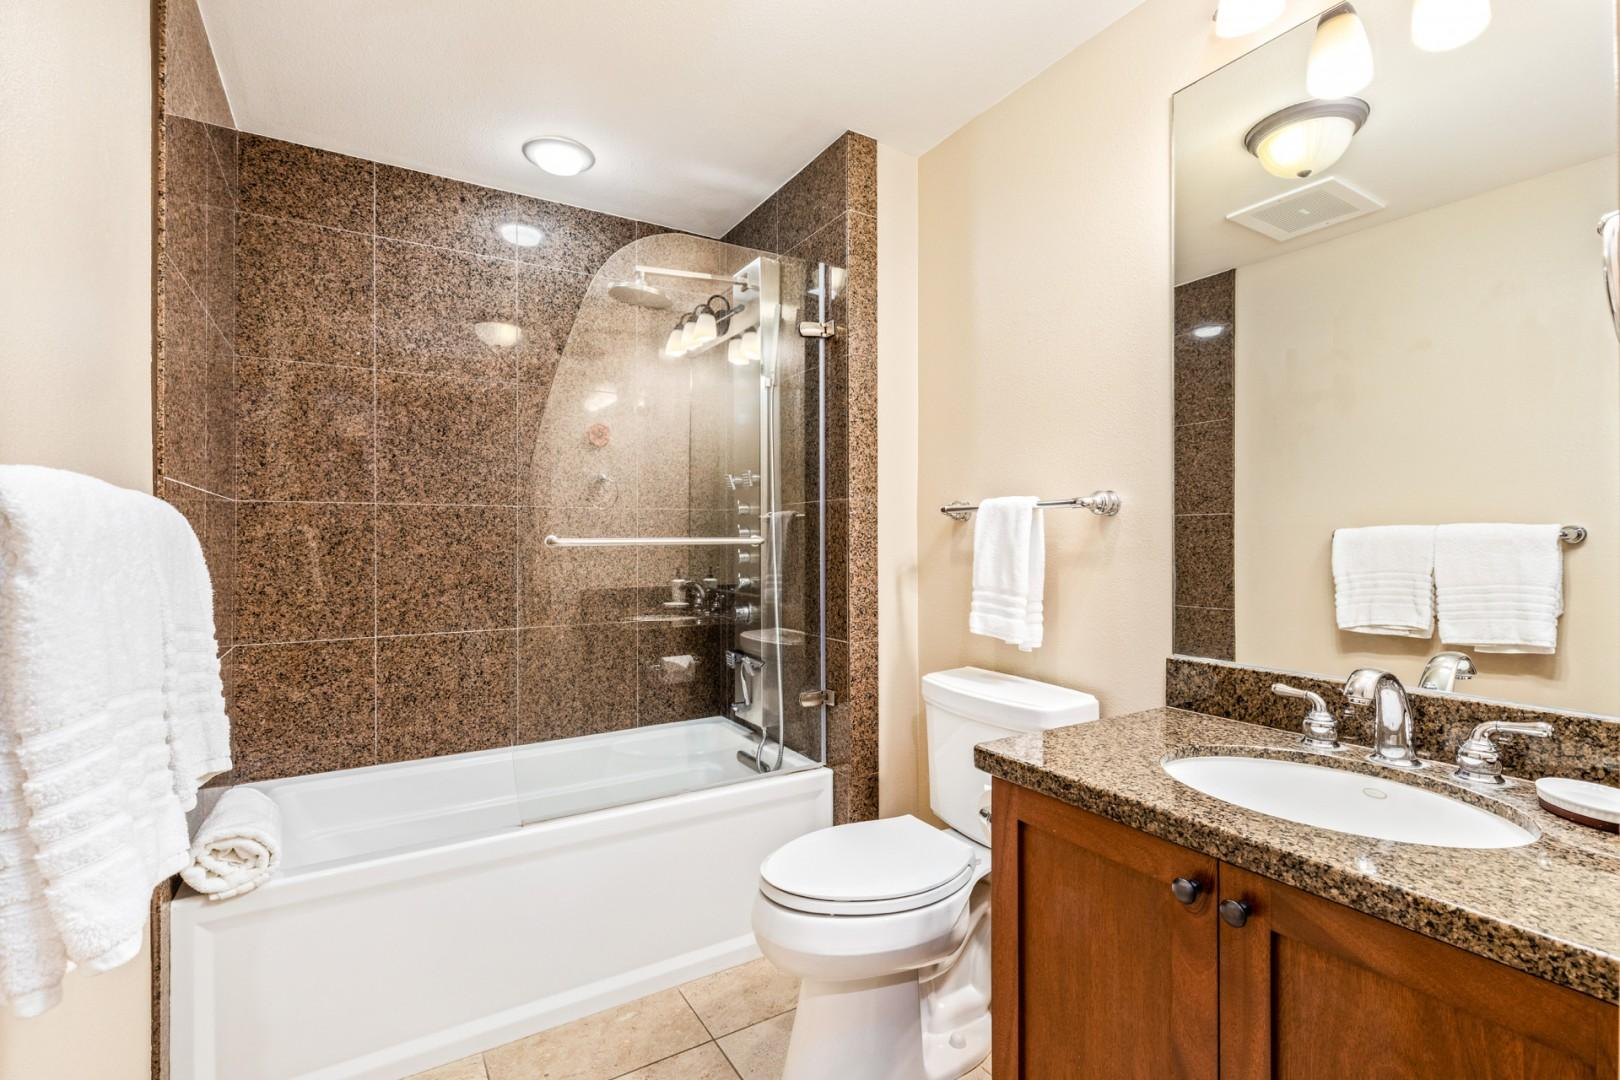 Full bathroom adjacent to guest bedroom with soaking tub/shower combo.